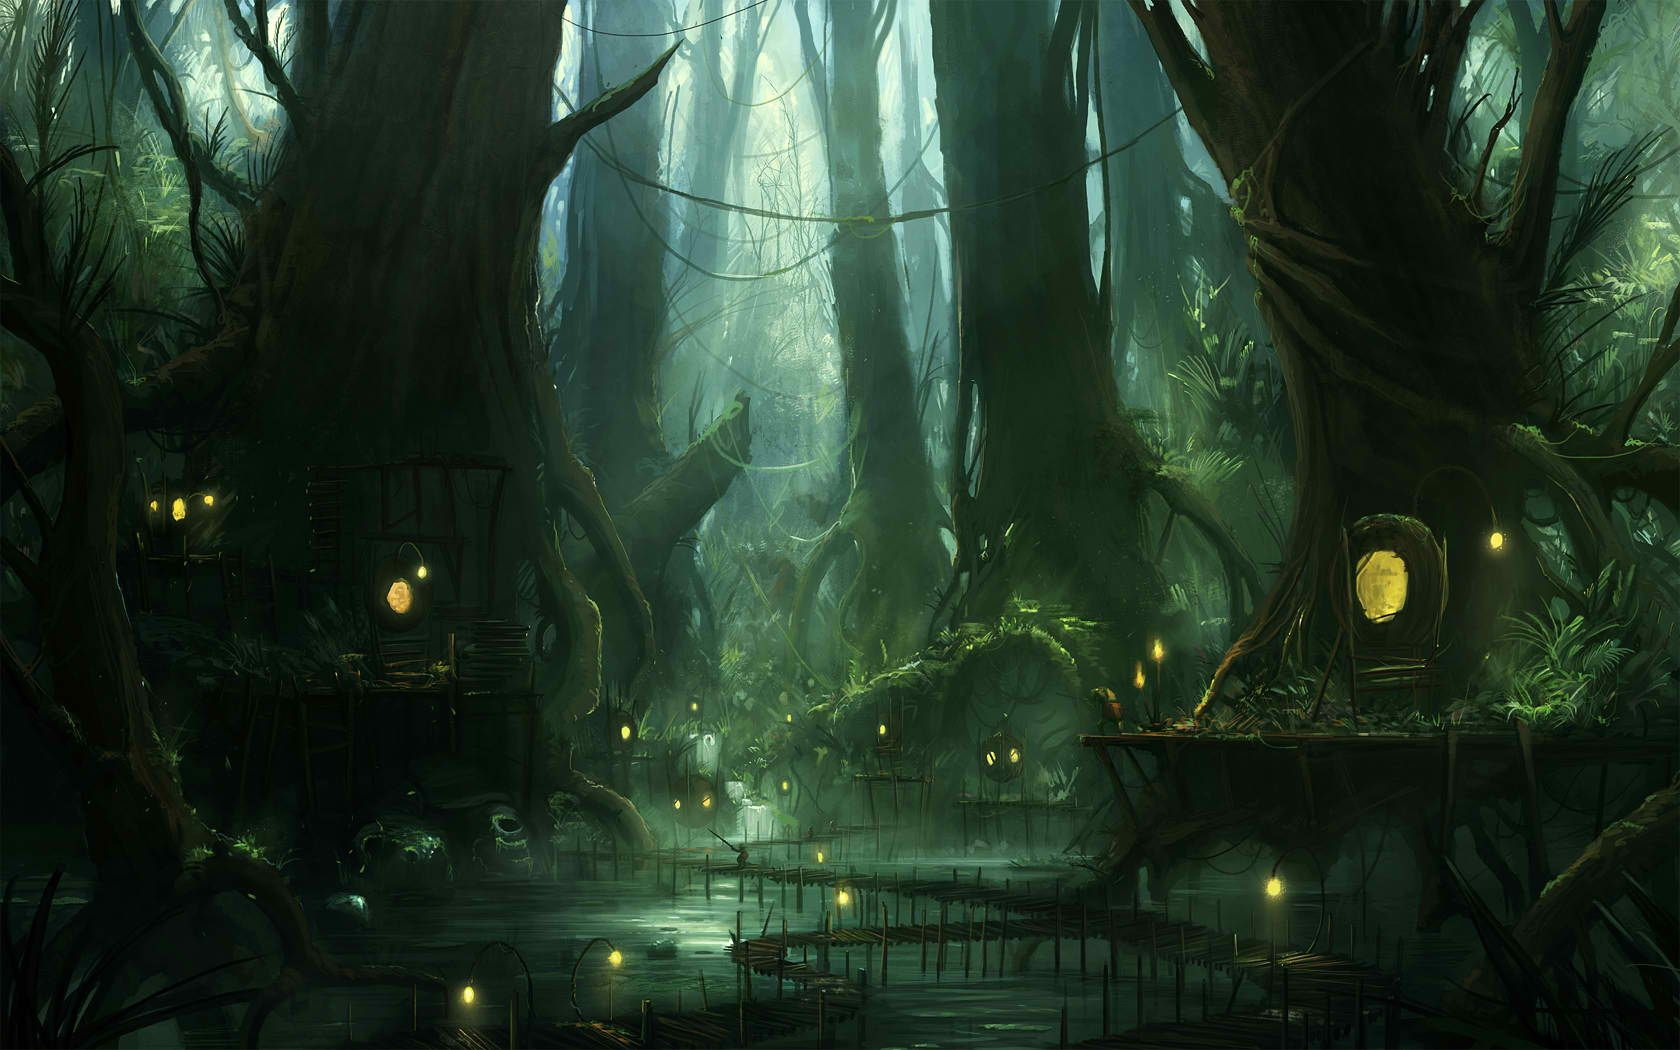 mtg swamp wallpaper mtg swamp wallpaper fantasy fantasy artmtg swamp wallpaper mtg swamp wallpaper